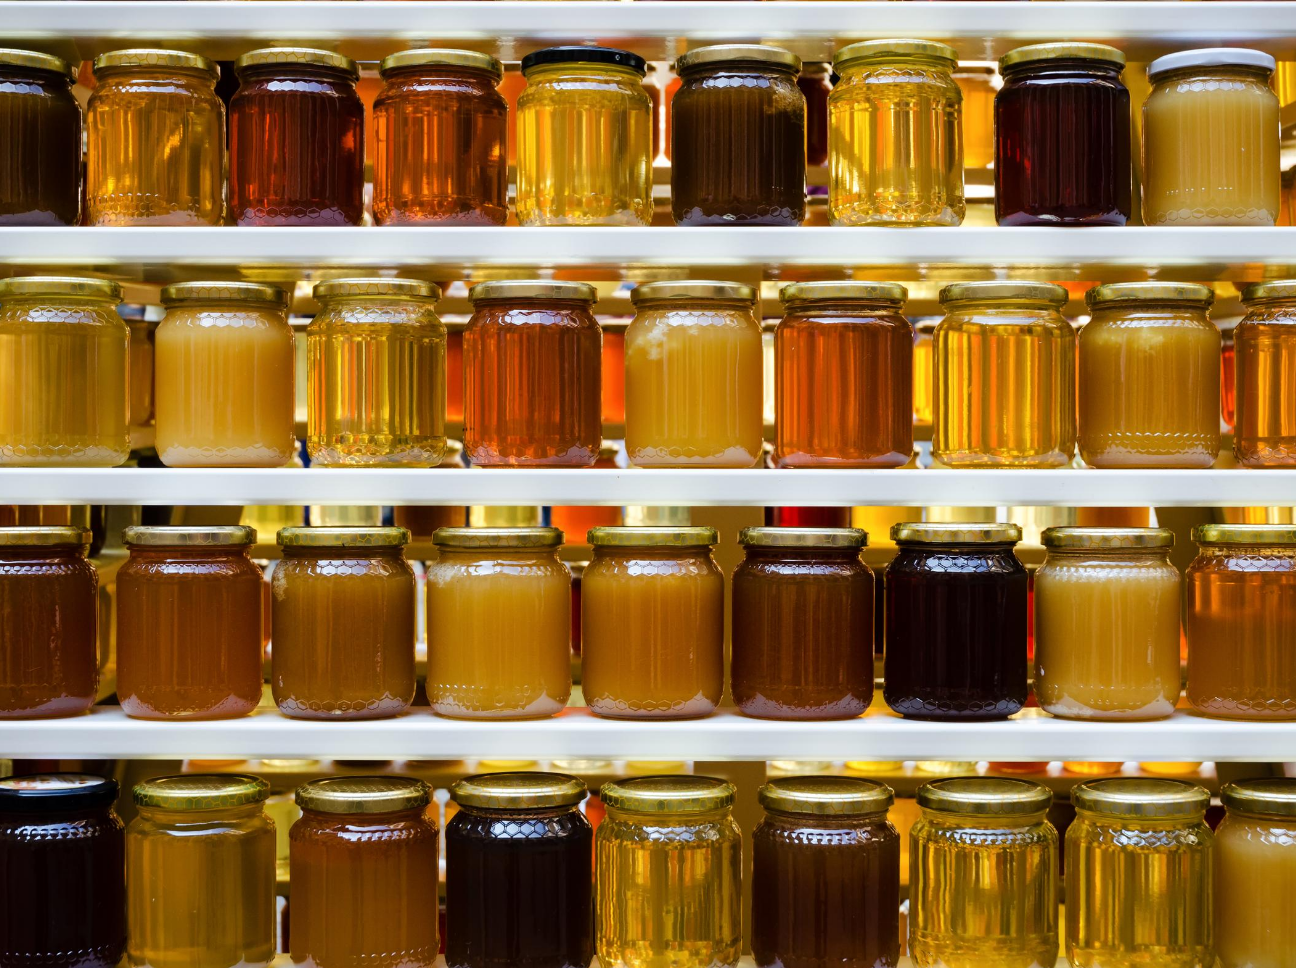 What Type Of Honey Are You Bottling This Year?